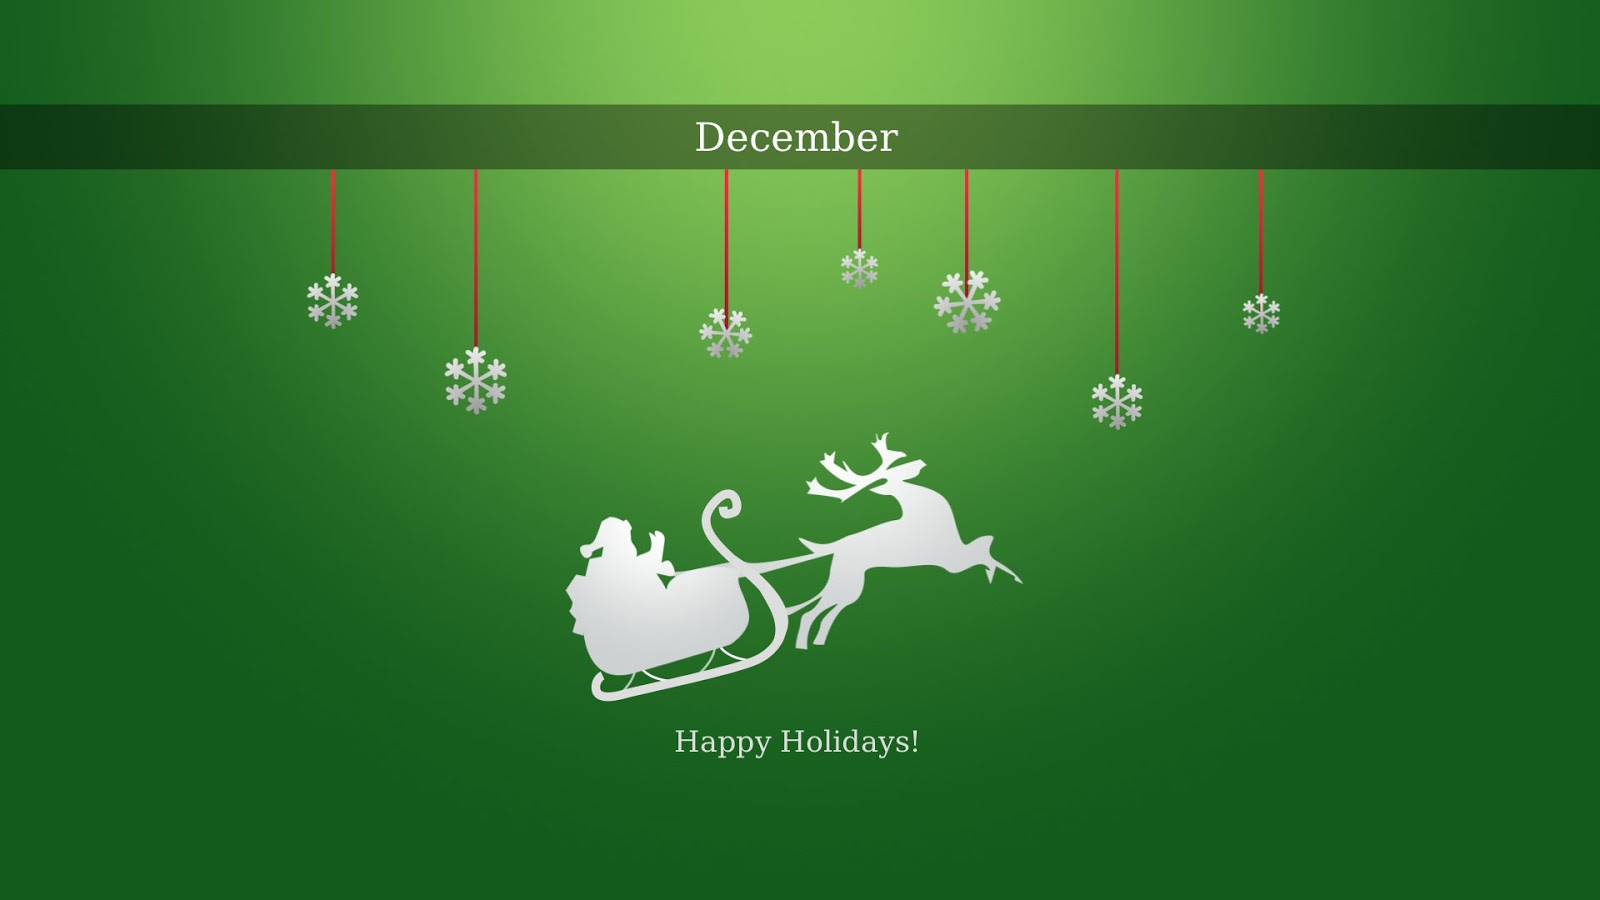 http://4.bp.blogspot.com/-fDgg2WGc2nA/UNbJaw8dH9I/AAAAAAAANhU/K1P0FICmM1k/s1600/happy-december-holidays-desktop-&-mac-wallpaper.jpg